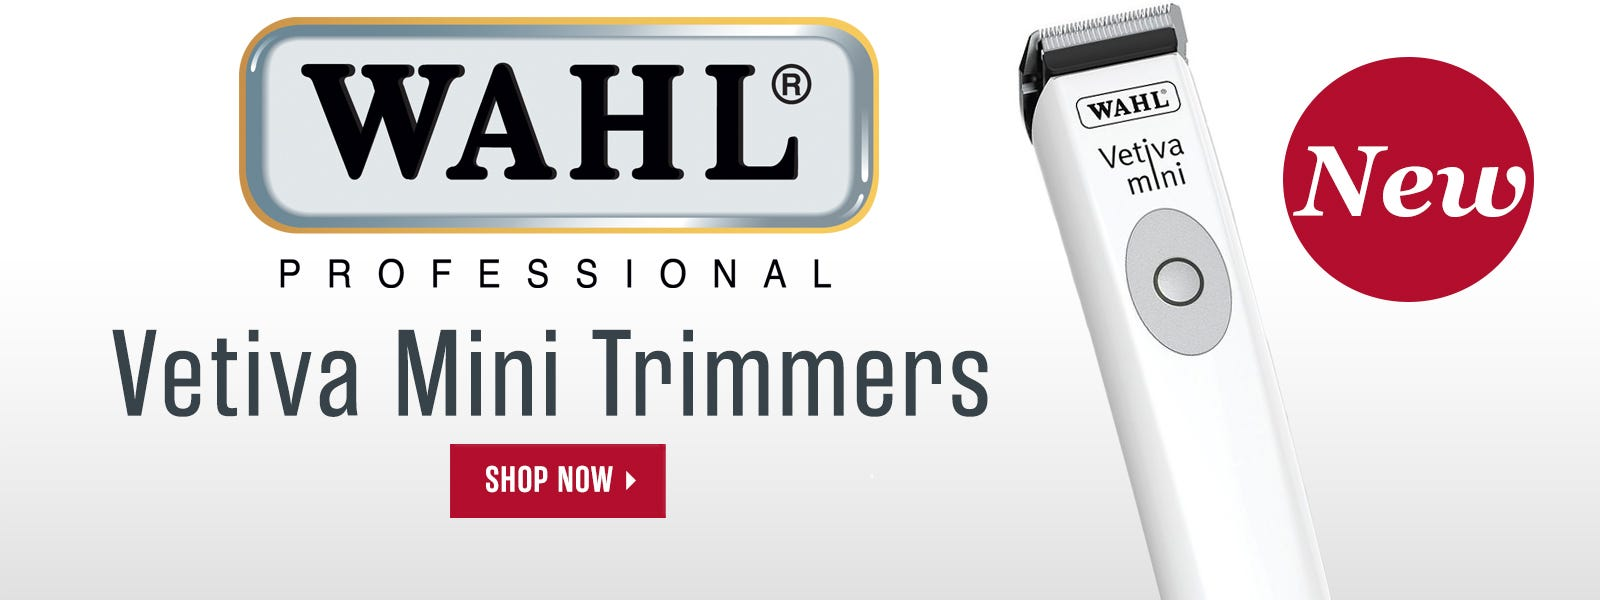 New Wahl Vetiva Mini Trimmers